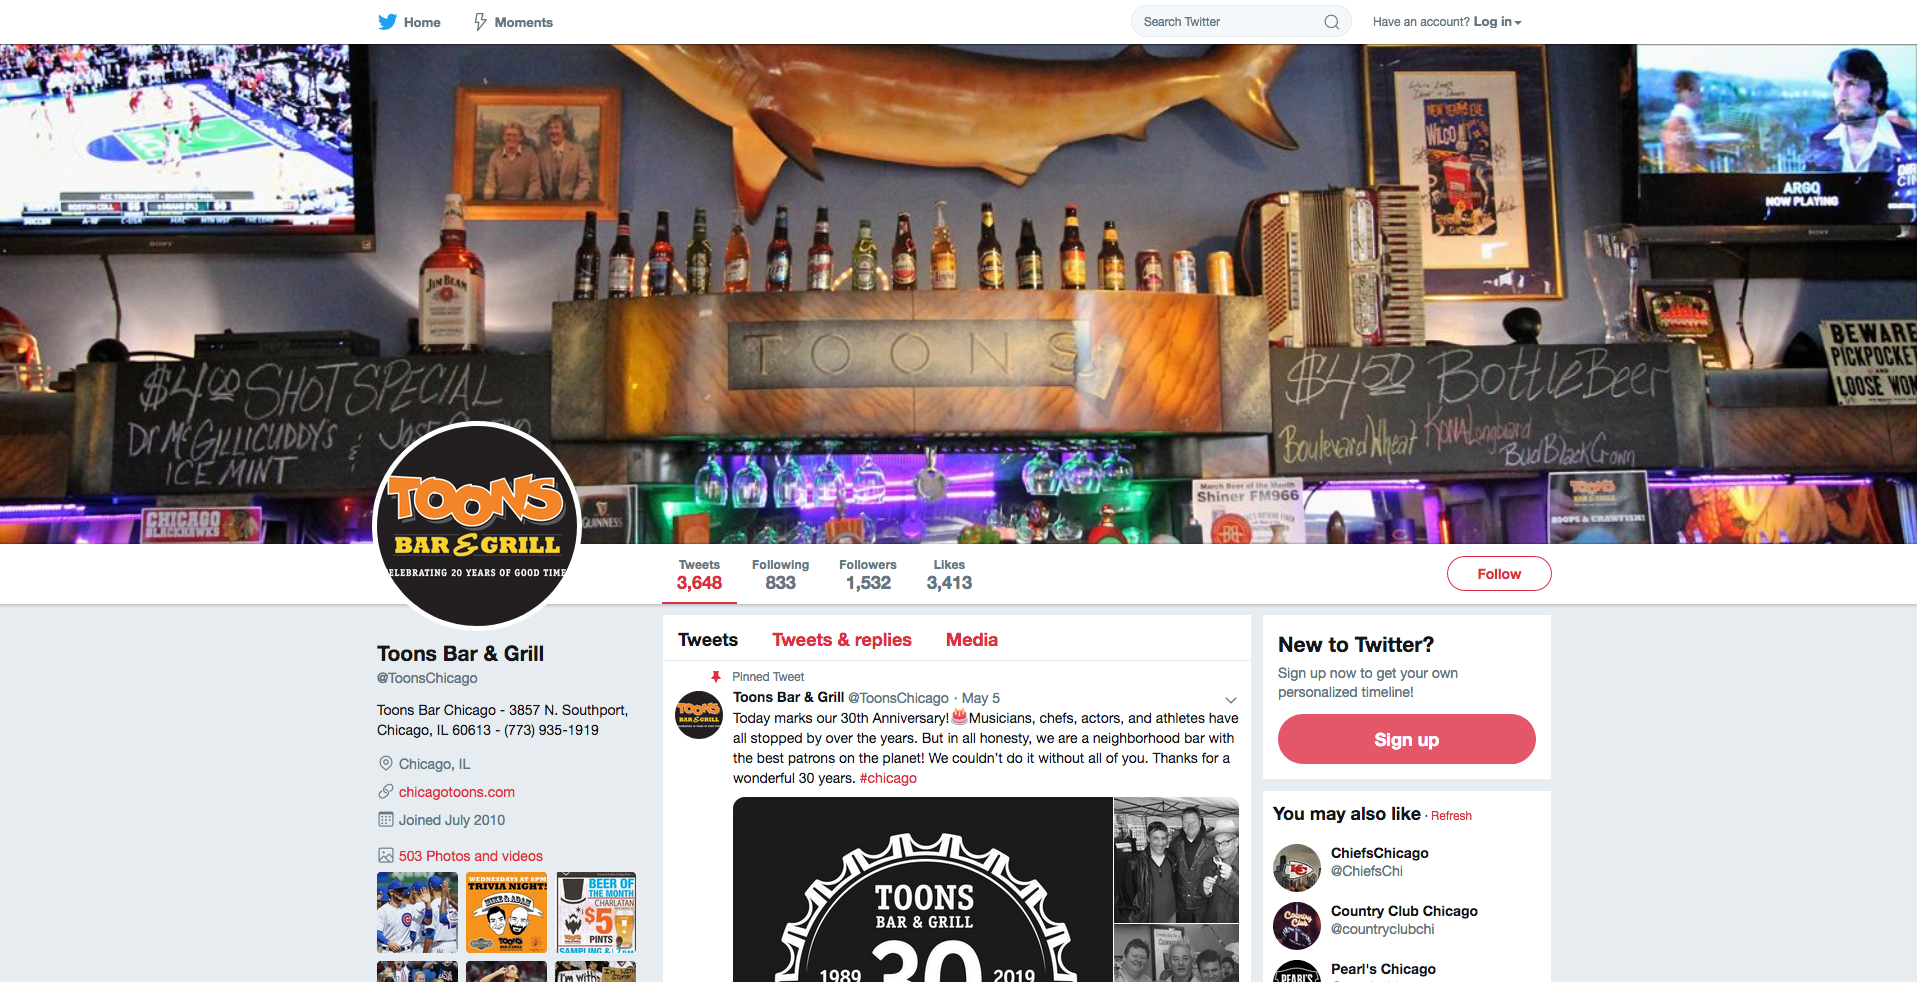 Toons Bar & Grill - Twitter